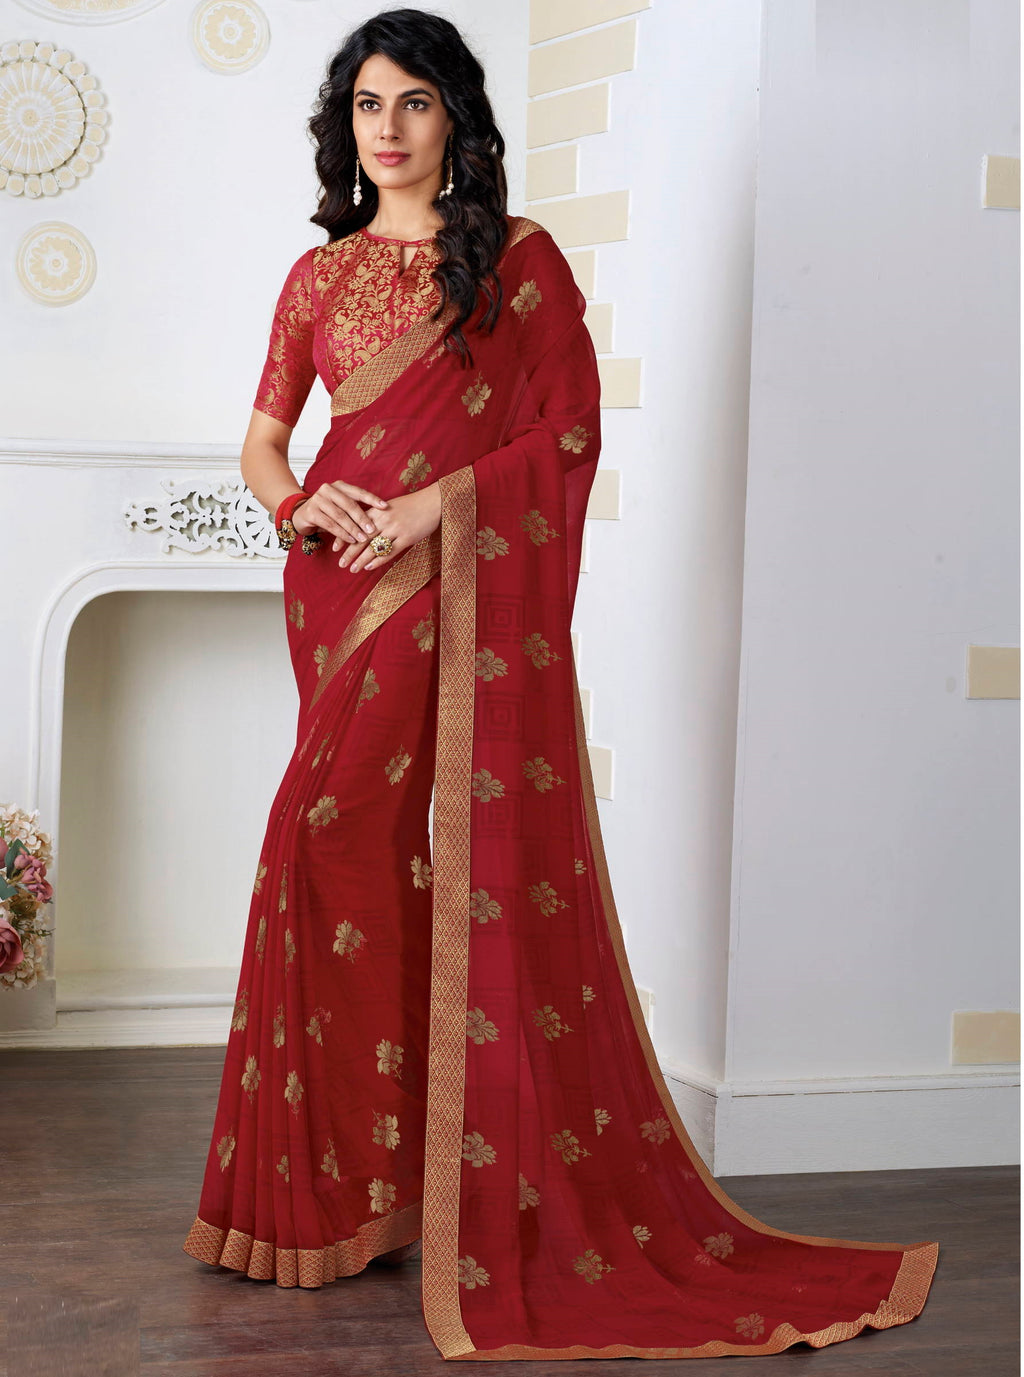 Red Color Chiffon Pretty Kitty Party Sarees NYF-4212 - YellowFashion.in